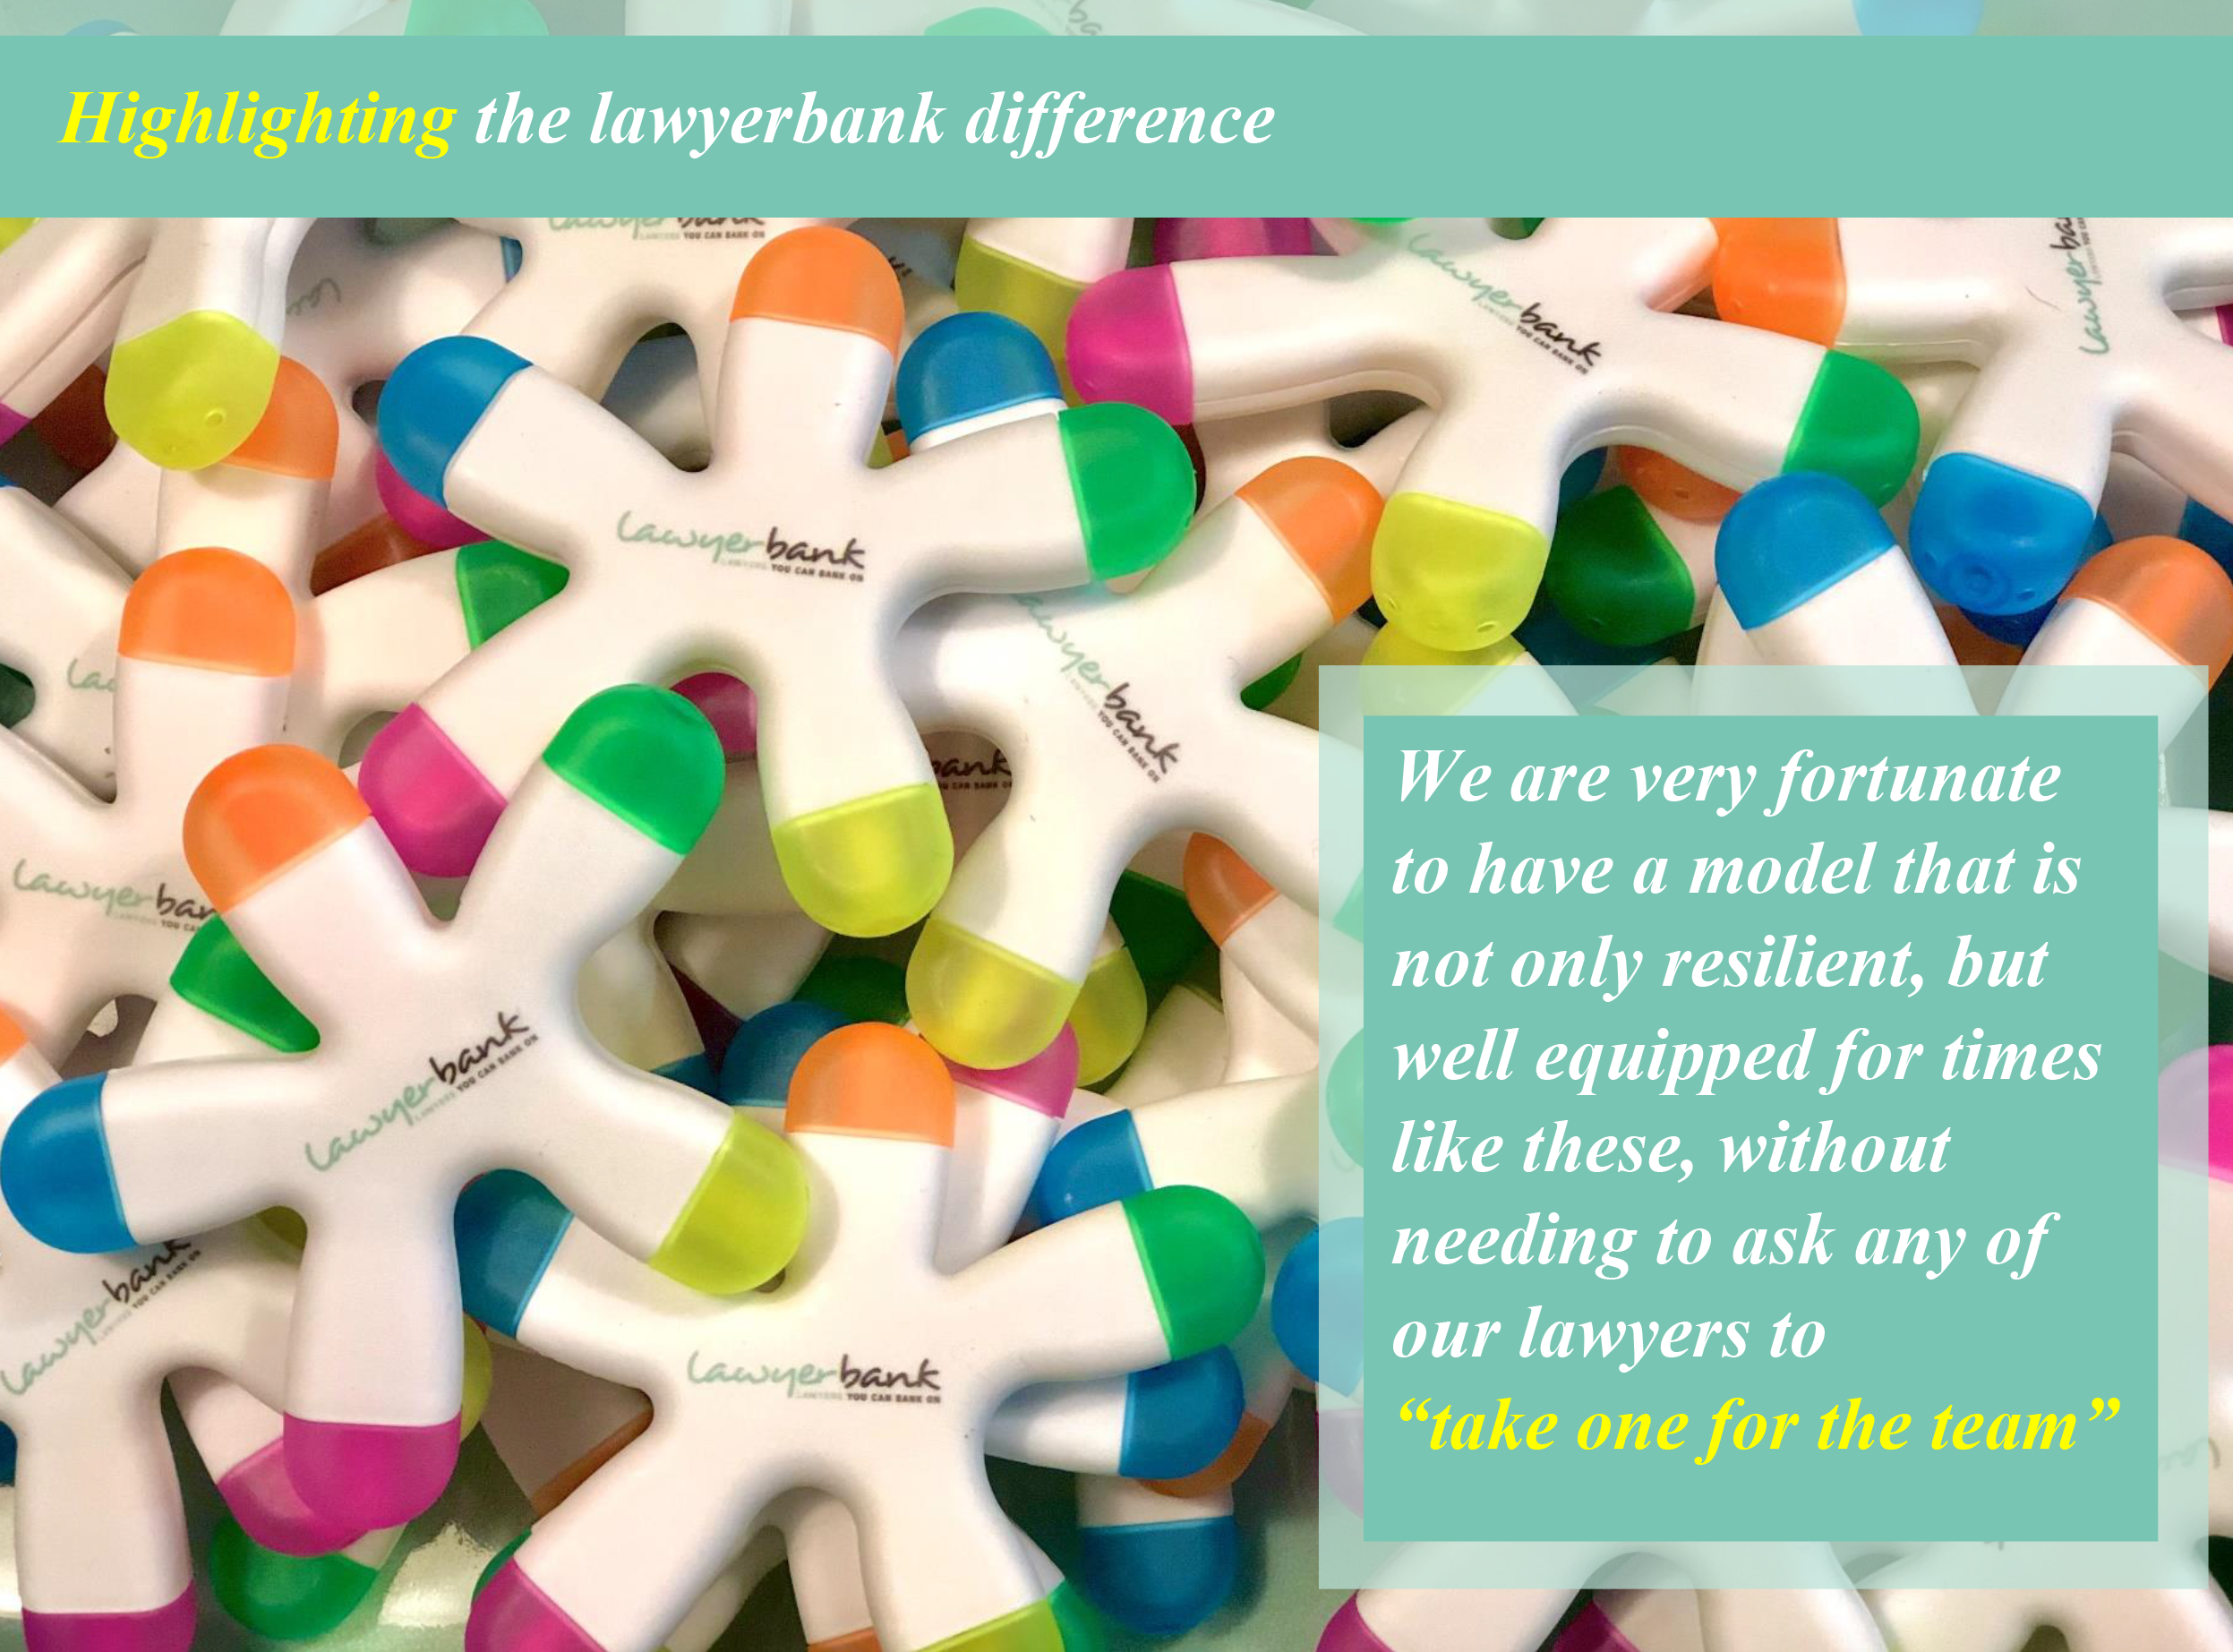 Highlighting the lawyerbank difference during COVID-19